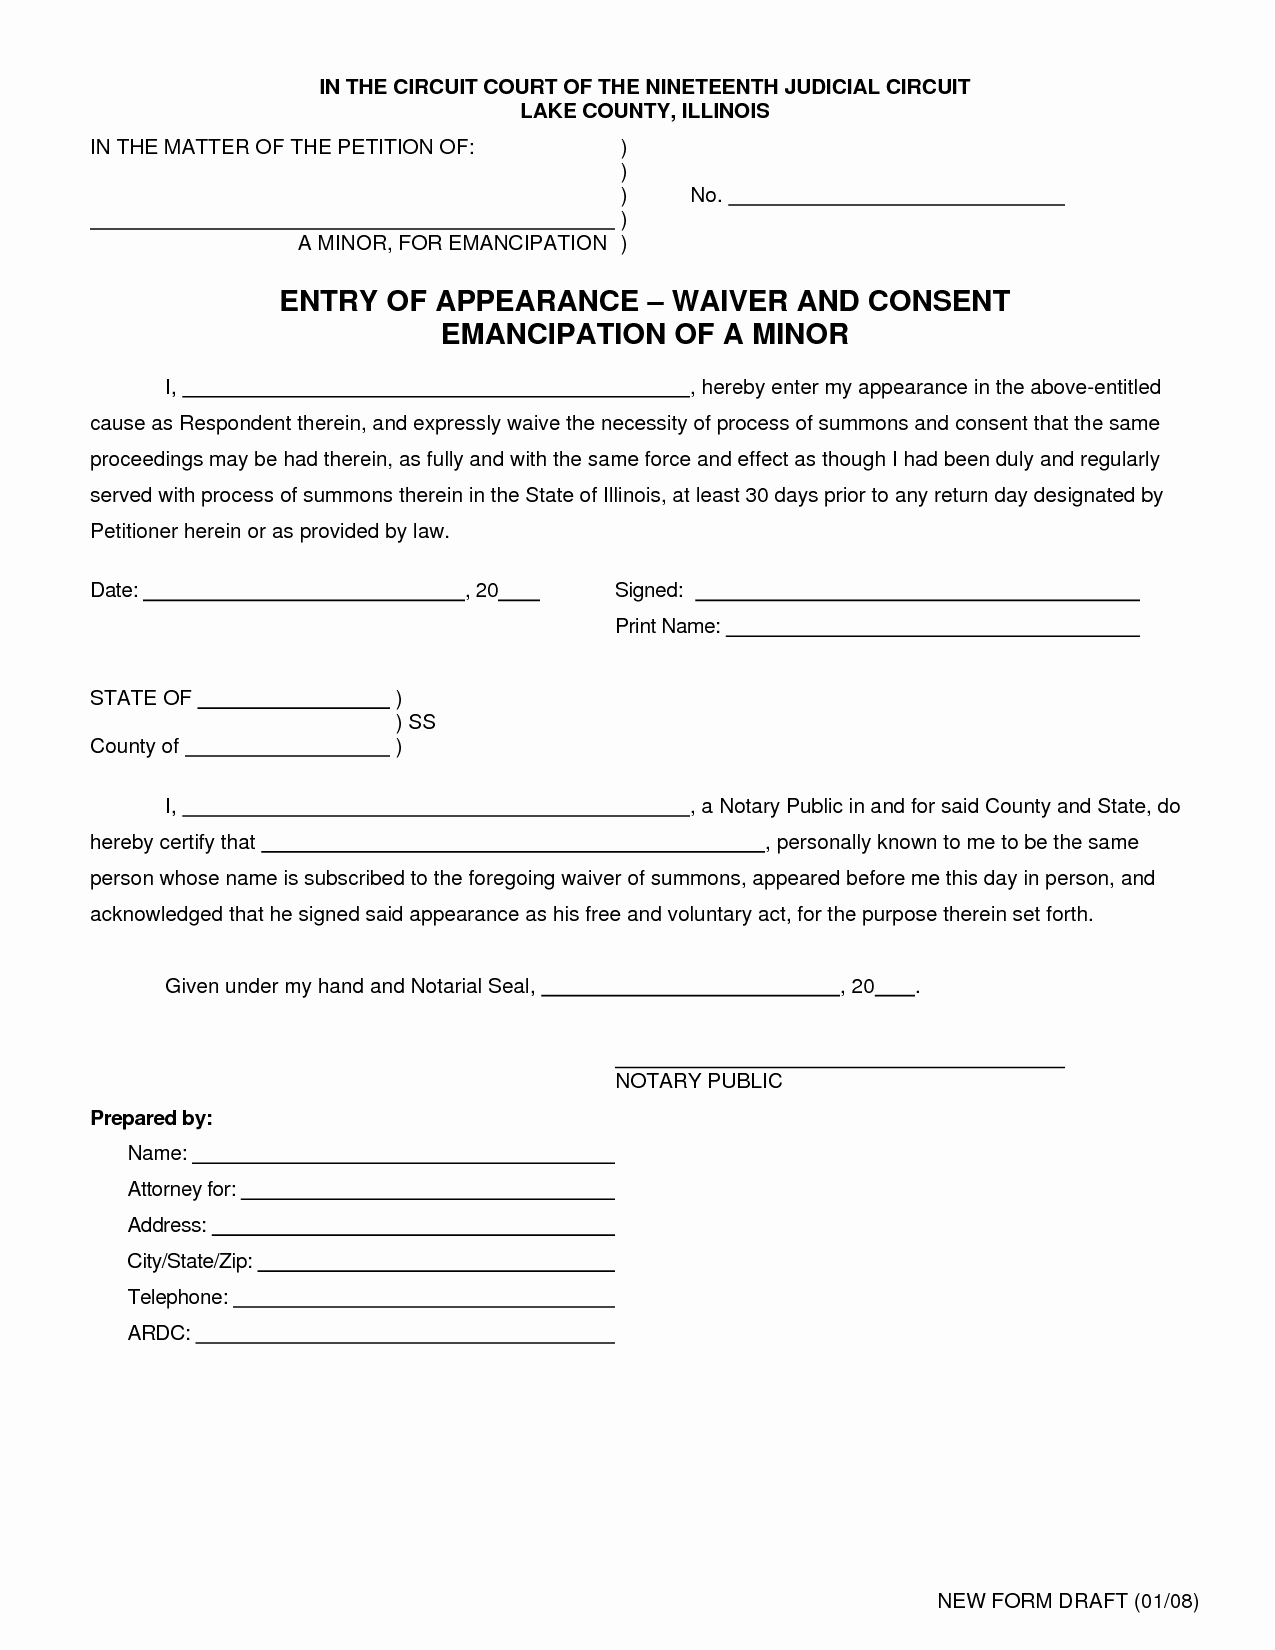 legal waiver template release of liability waiver form legal advice generic sports liability waiver form waiver form template for sports